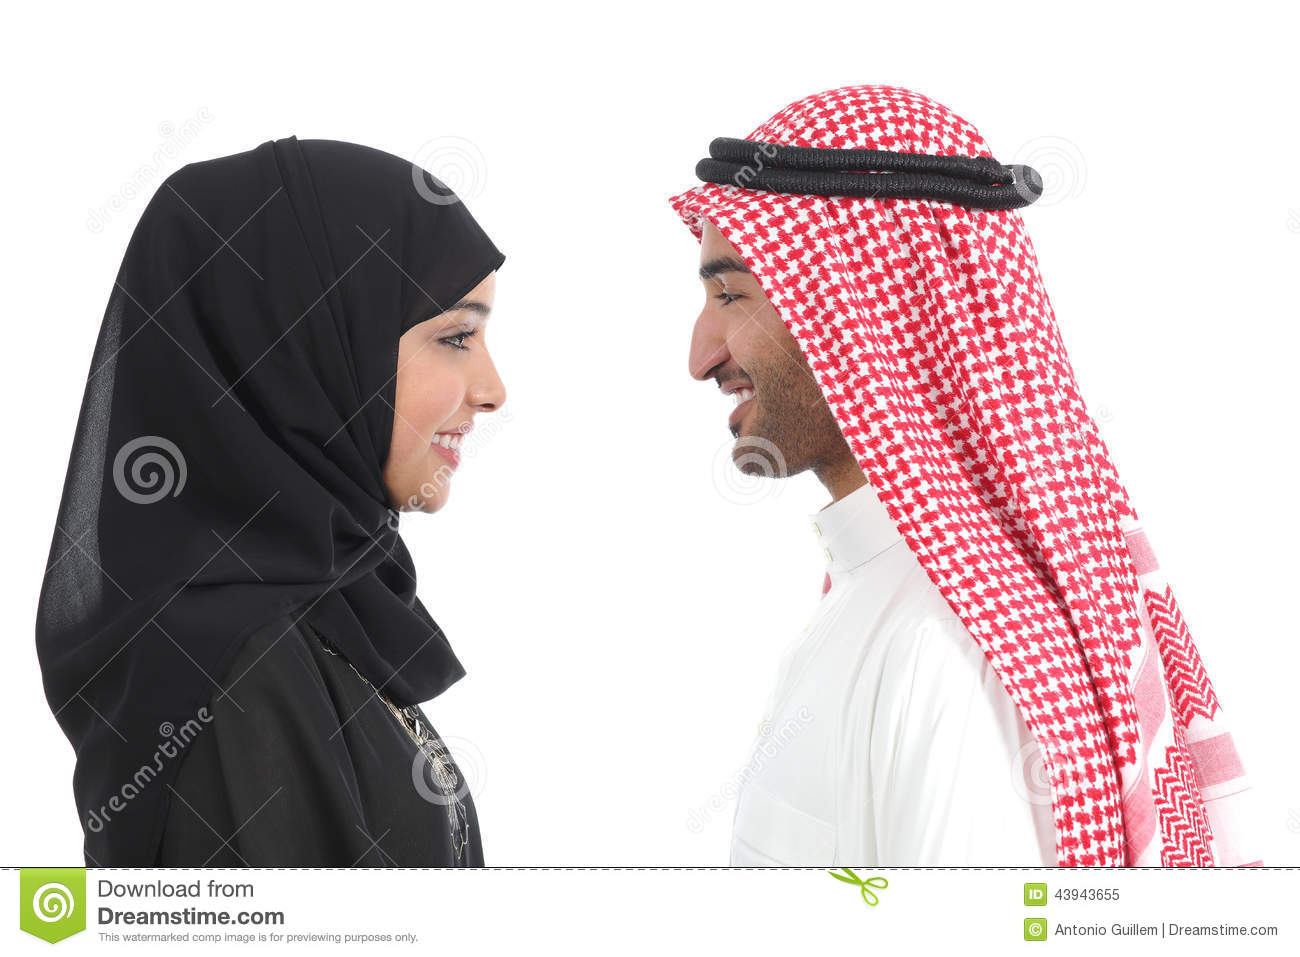 white hall muslim girl personals 7 reasons to date a muslim girl the muslims just want to get those productive white i do not think many dudes that are not muslim manage to date a muslim girl.